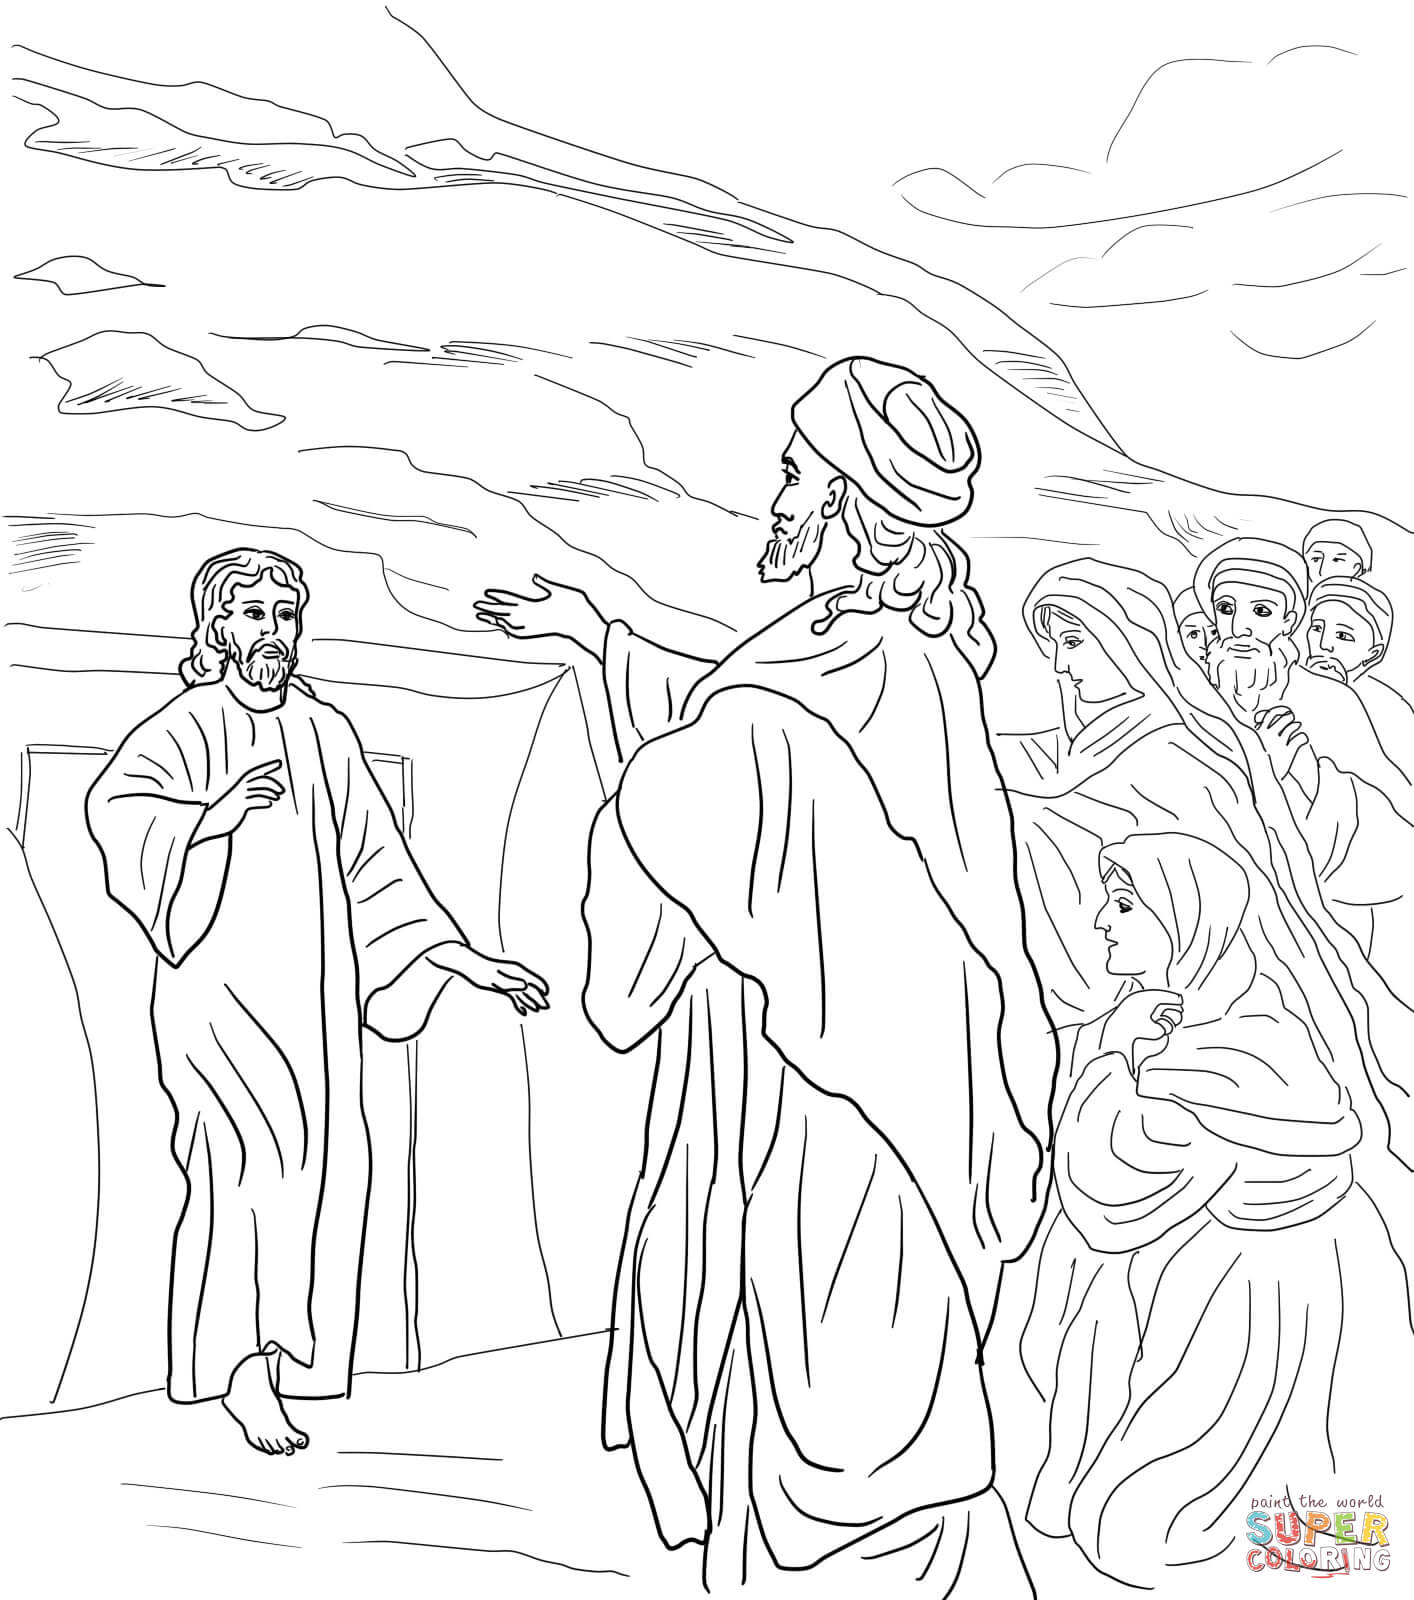 Click the jesus raises lazarus from the dead coloring pages